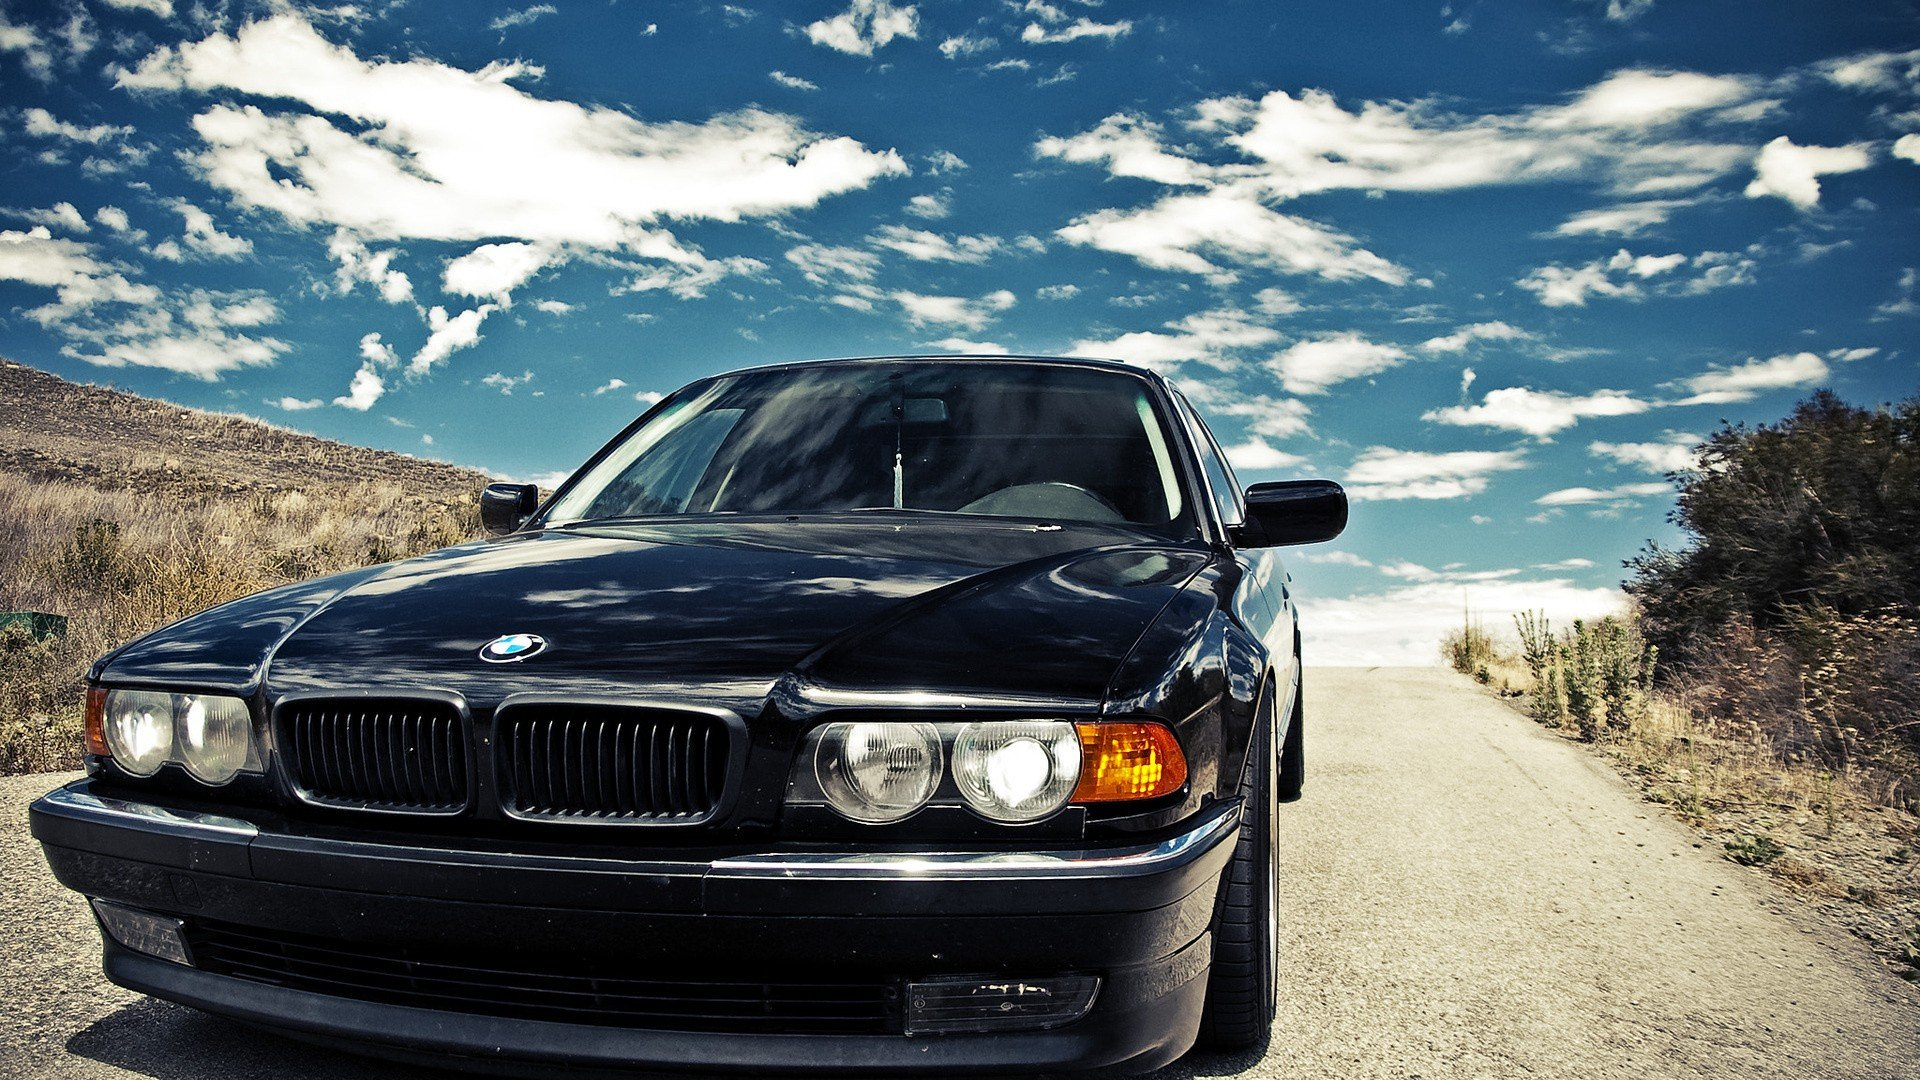 Bmw Black Cars Bmw E38 Wallpaper 1920x1080 253971 Wallpaperup